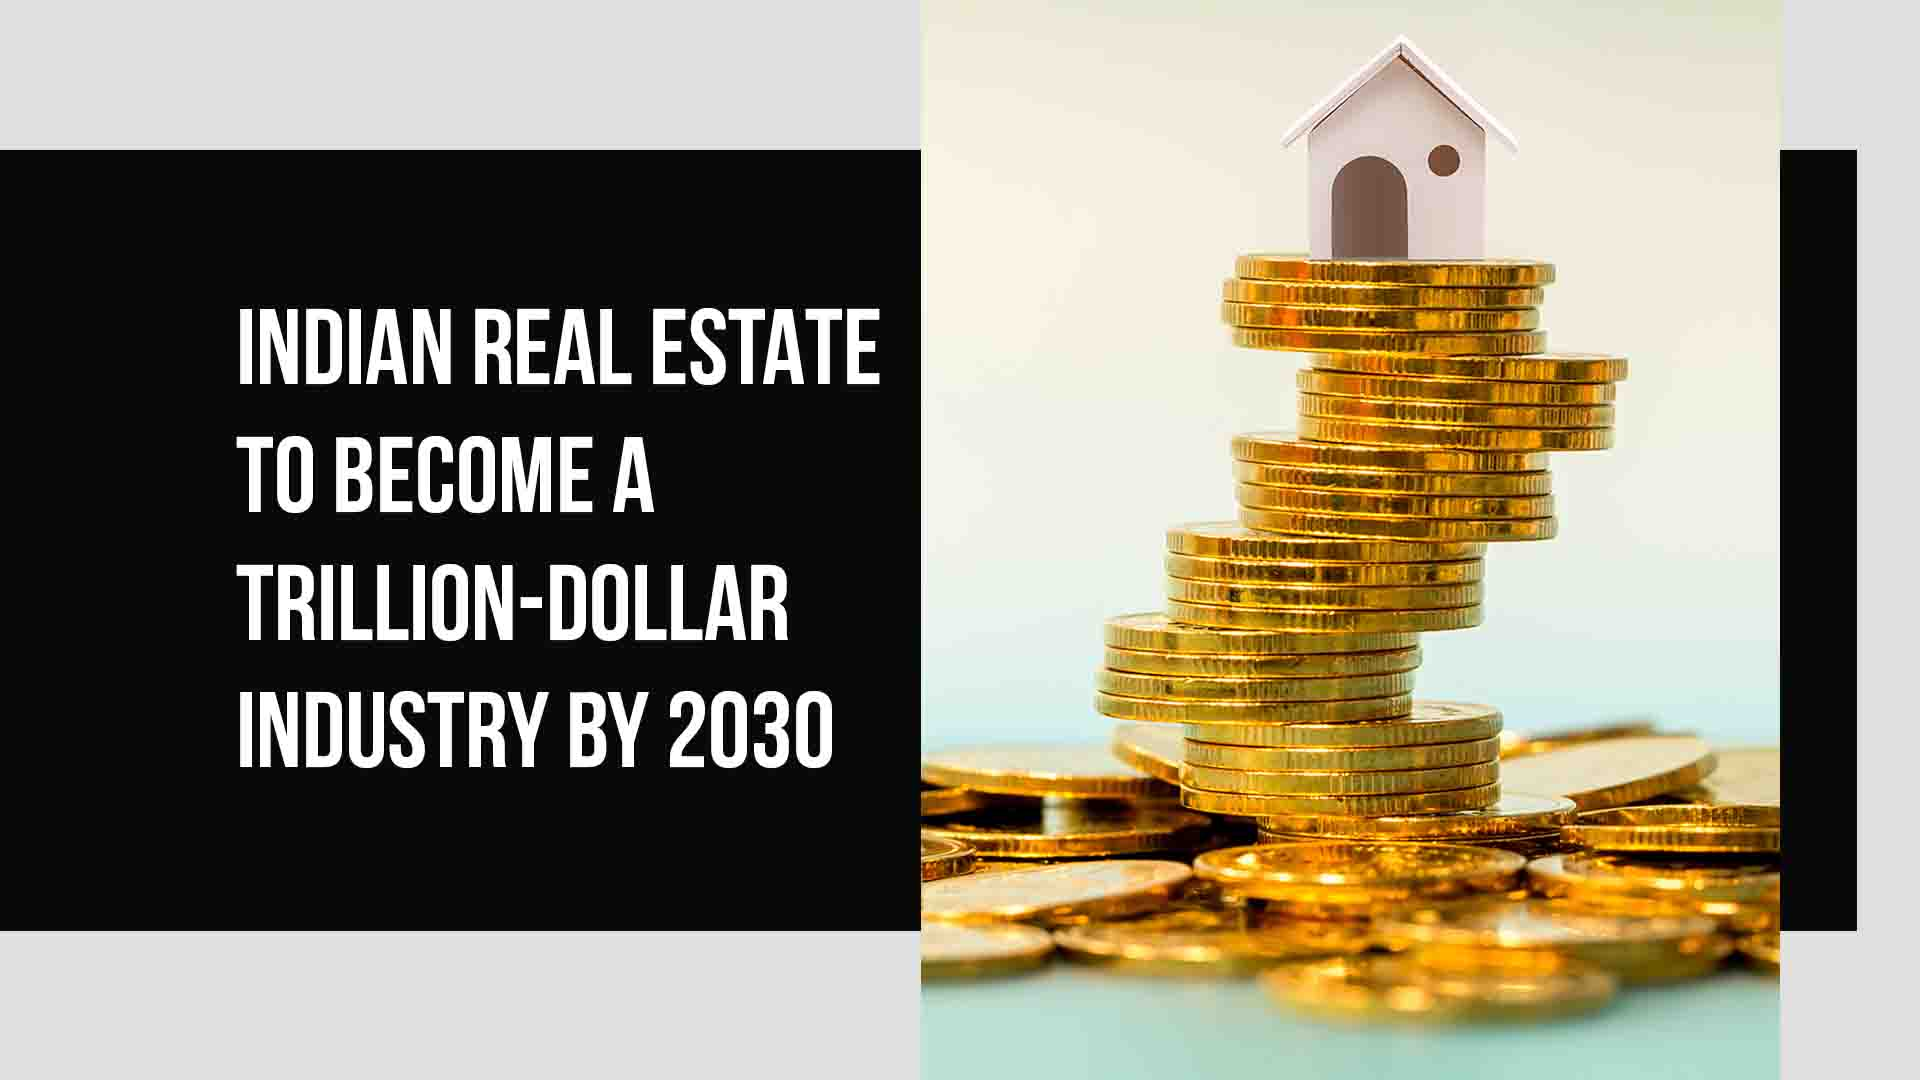 Indian realty to become trillion dollar industry by 2030